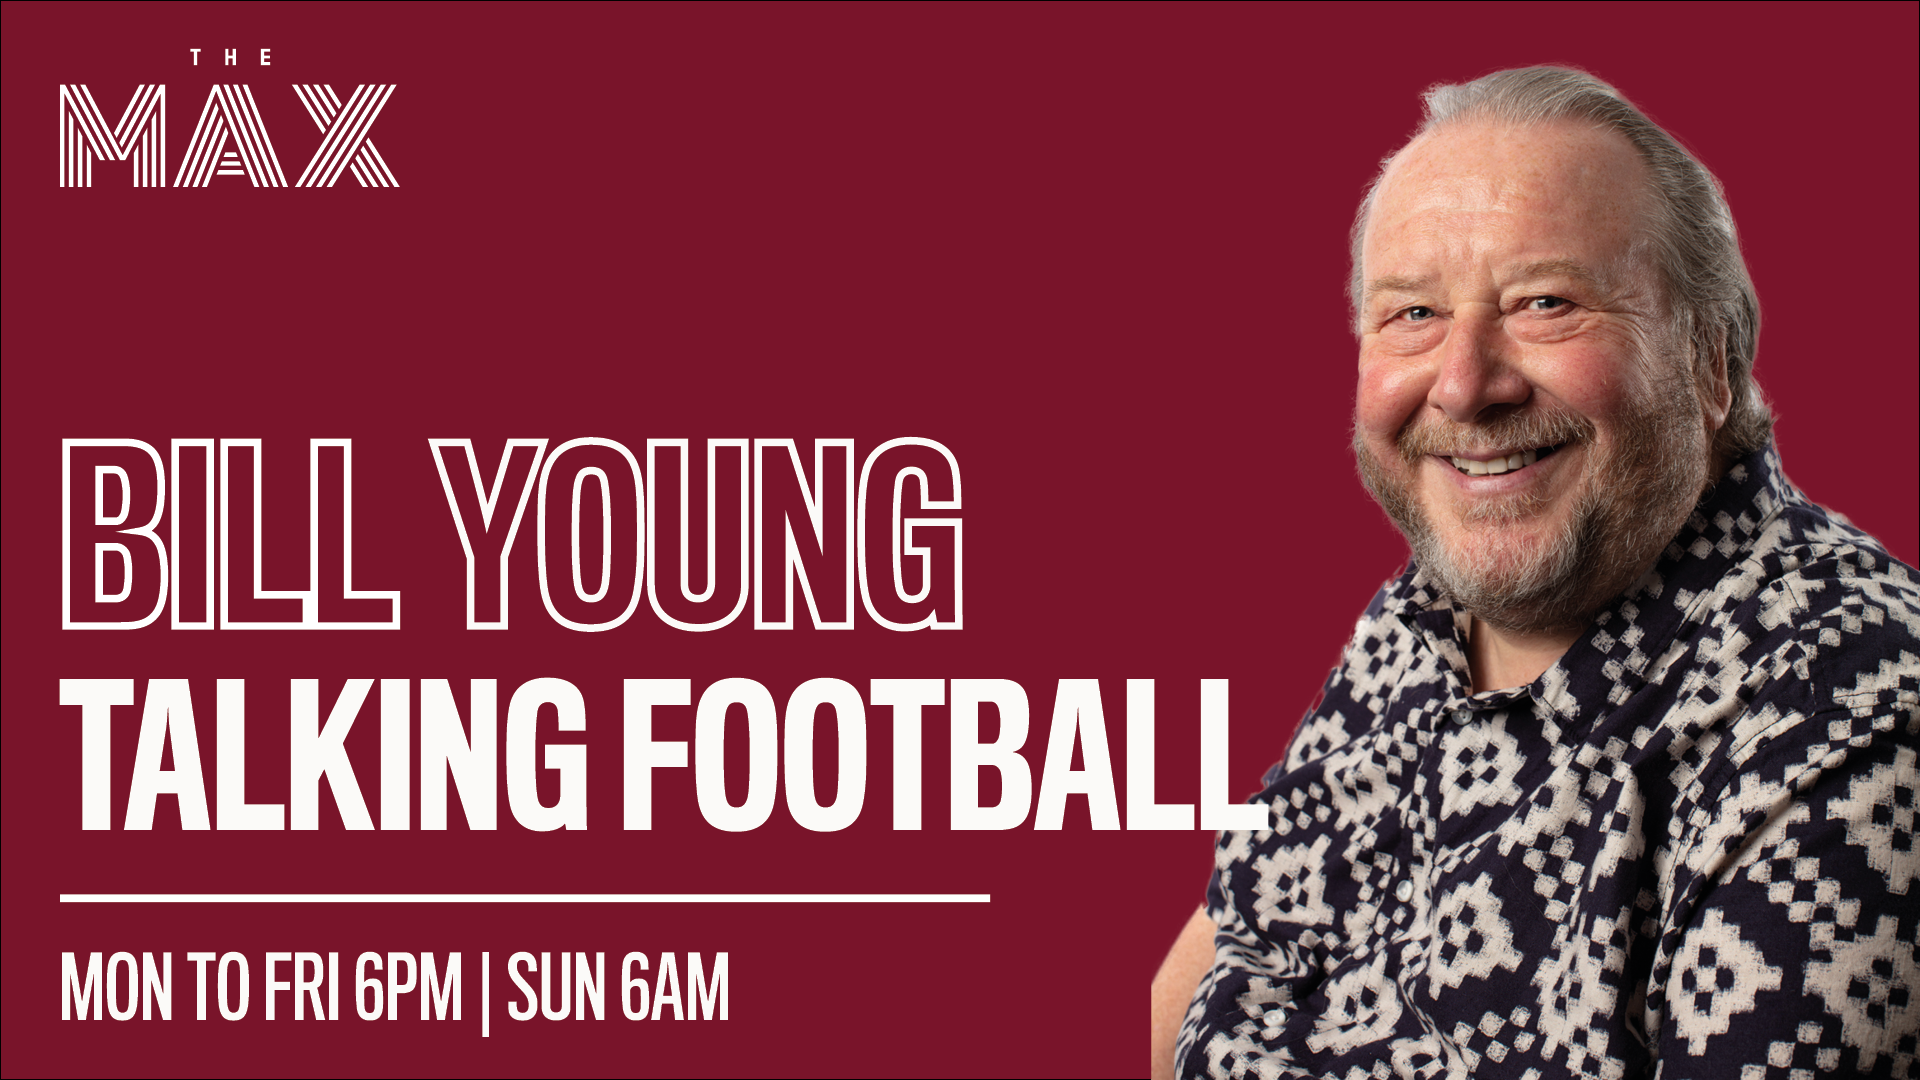 Talking Football with Bill Young - Friday 23 April